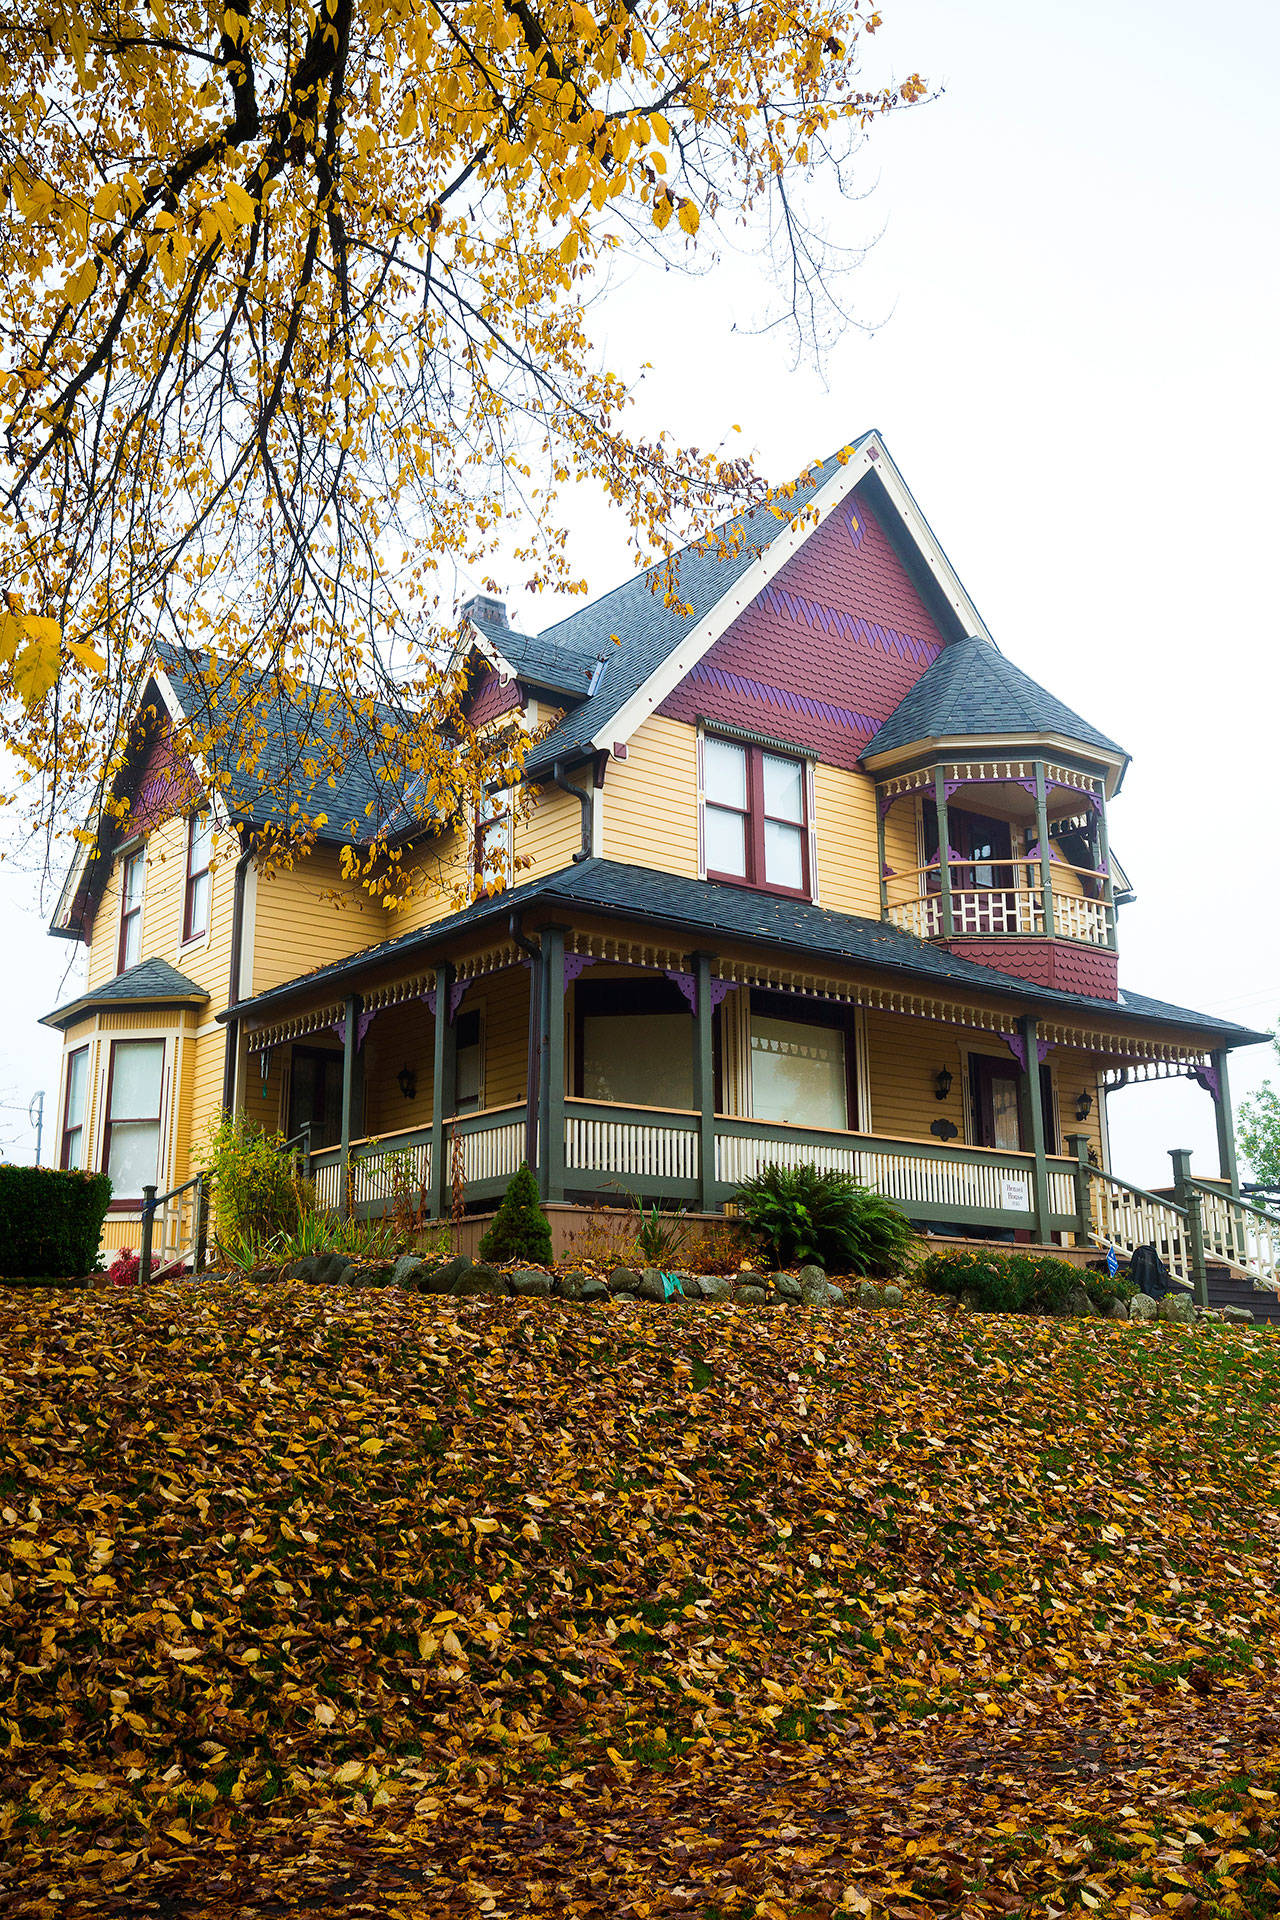 Snohomish's historical Hensel House will be featured on the Snohomish Historical Society's Christmas Parlor Tour on Dec. 8. (Andy Bronson / The Herald)